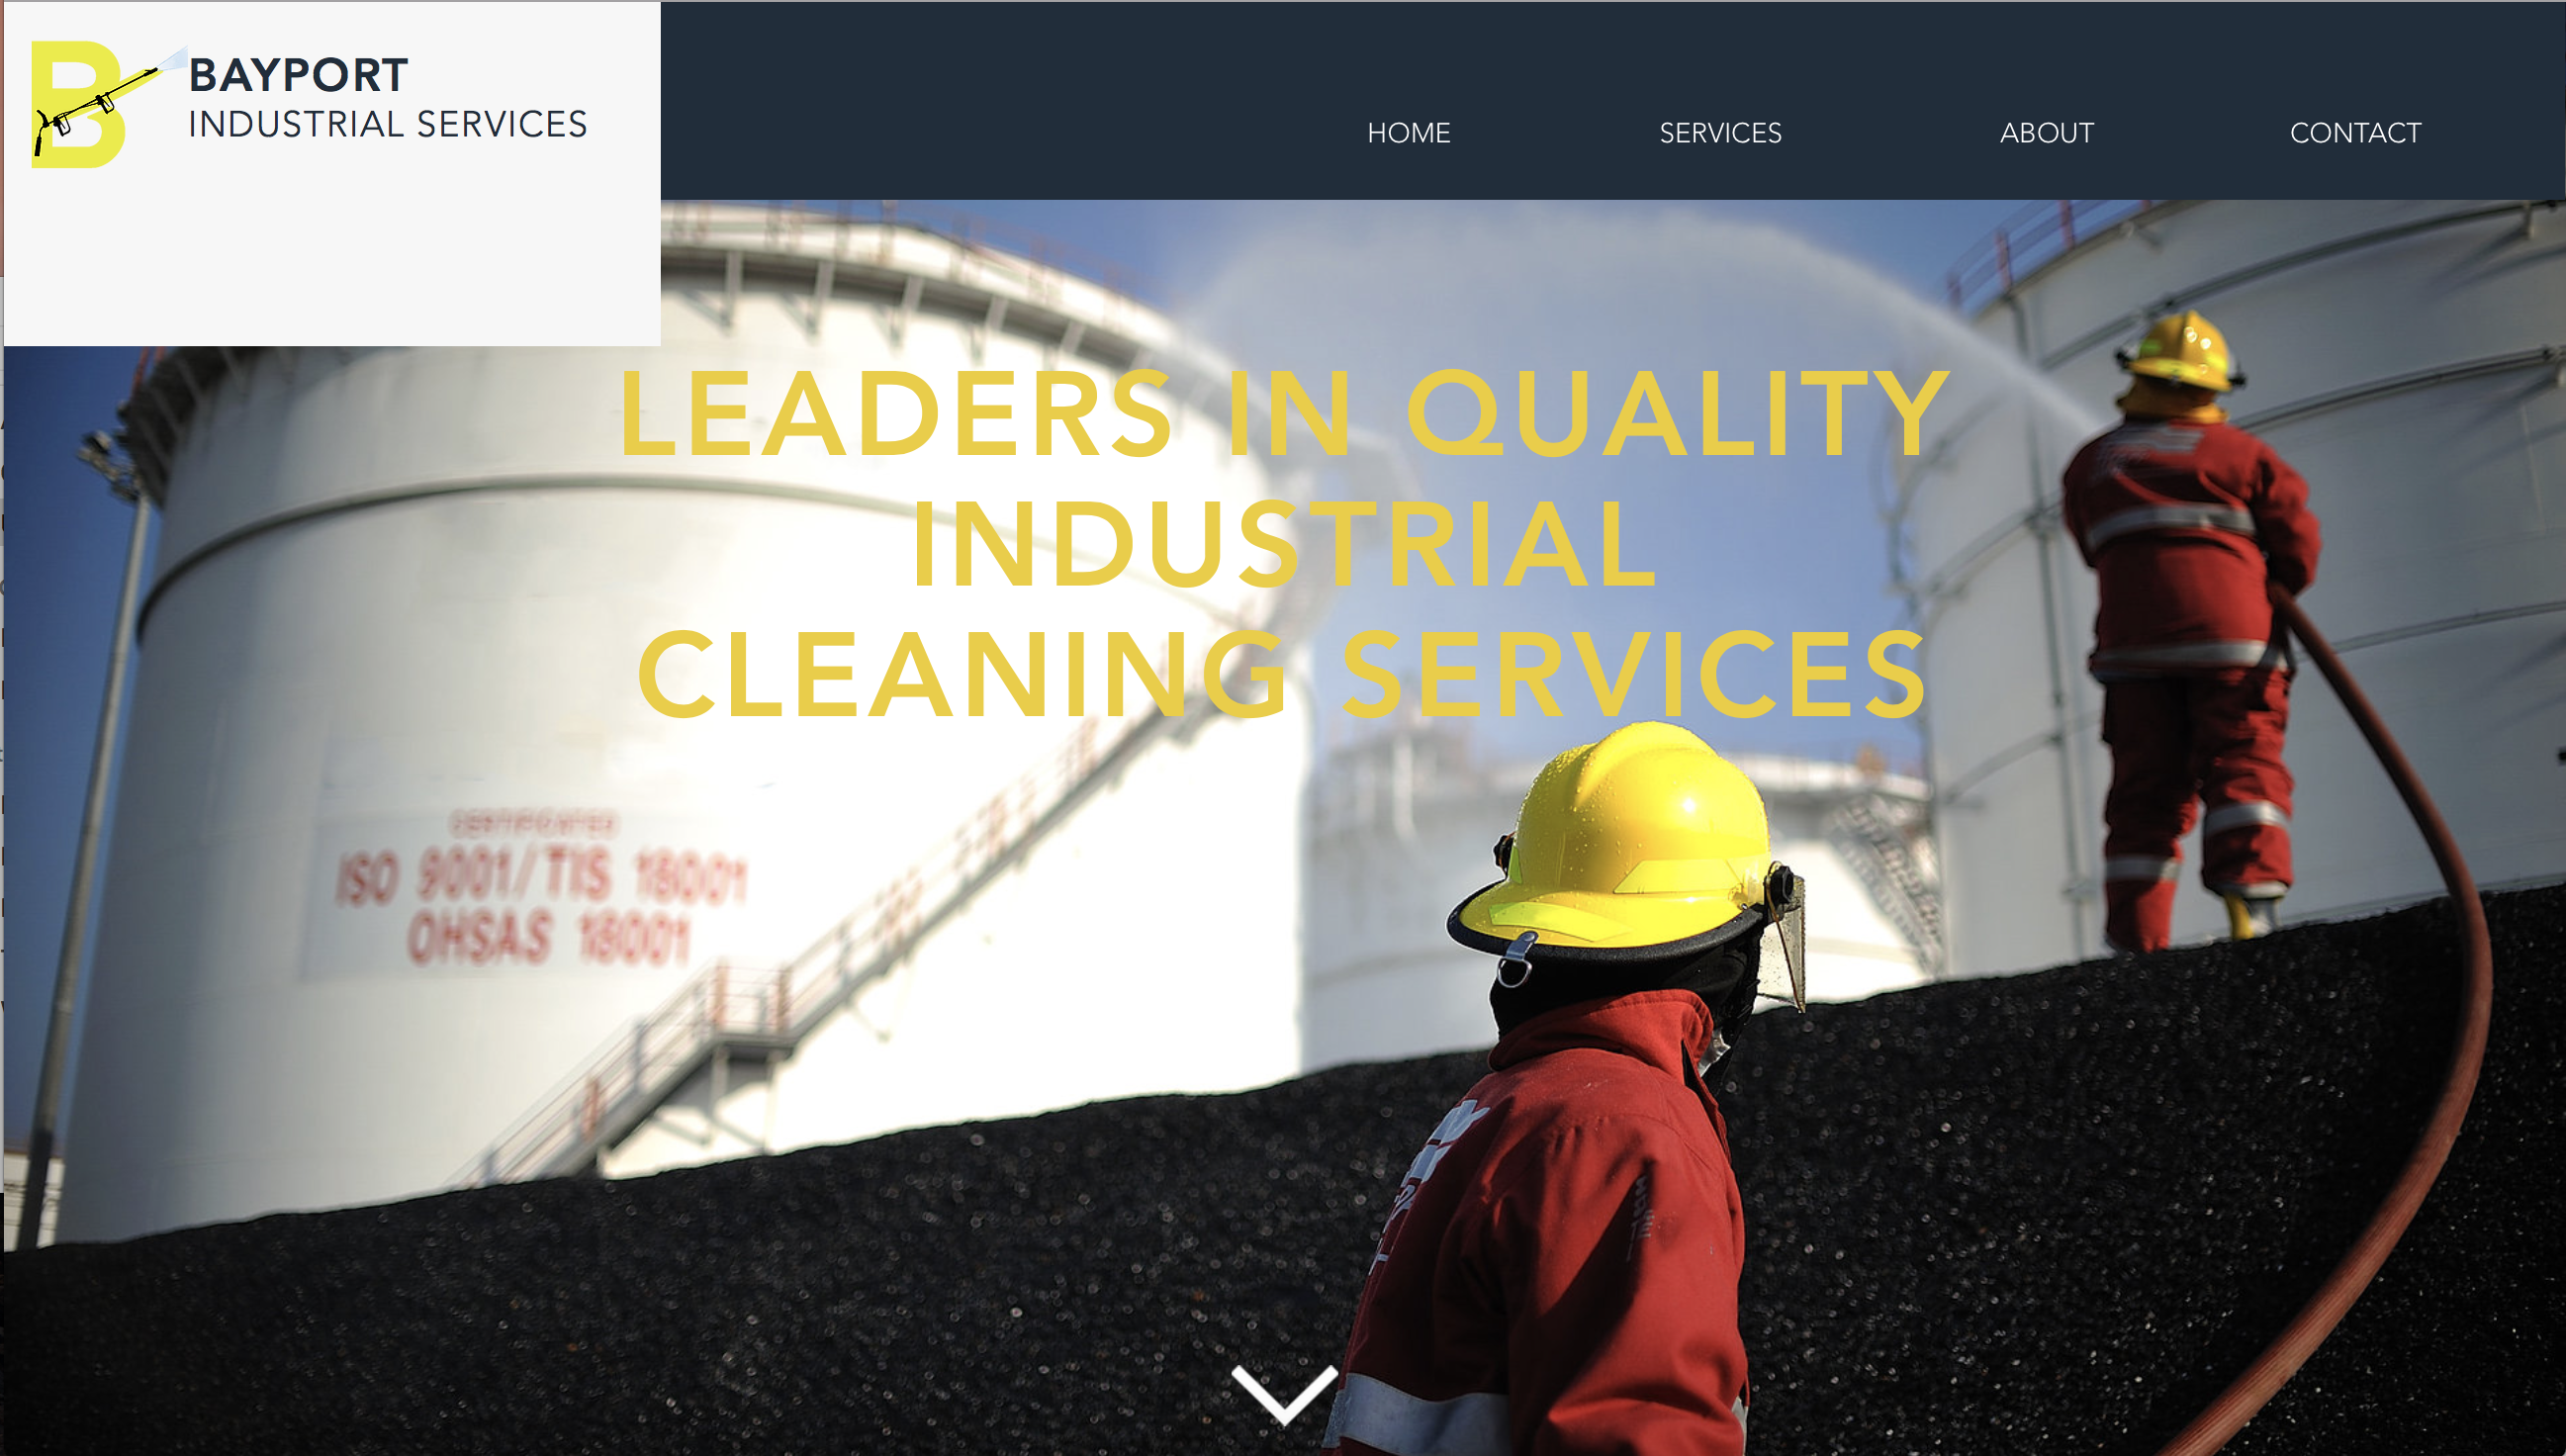 Bayport Industrial Services